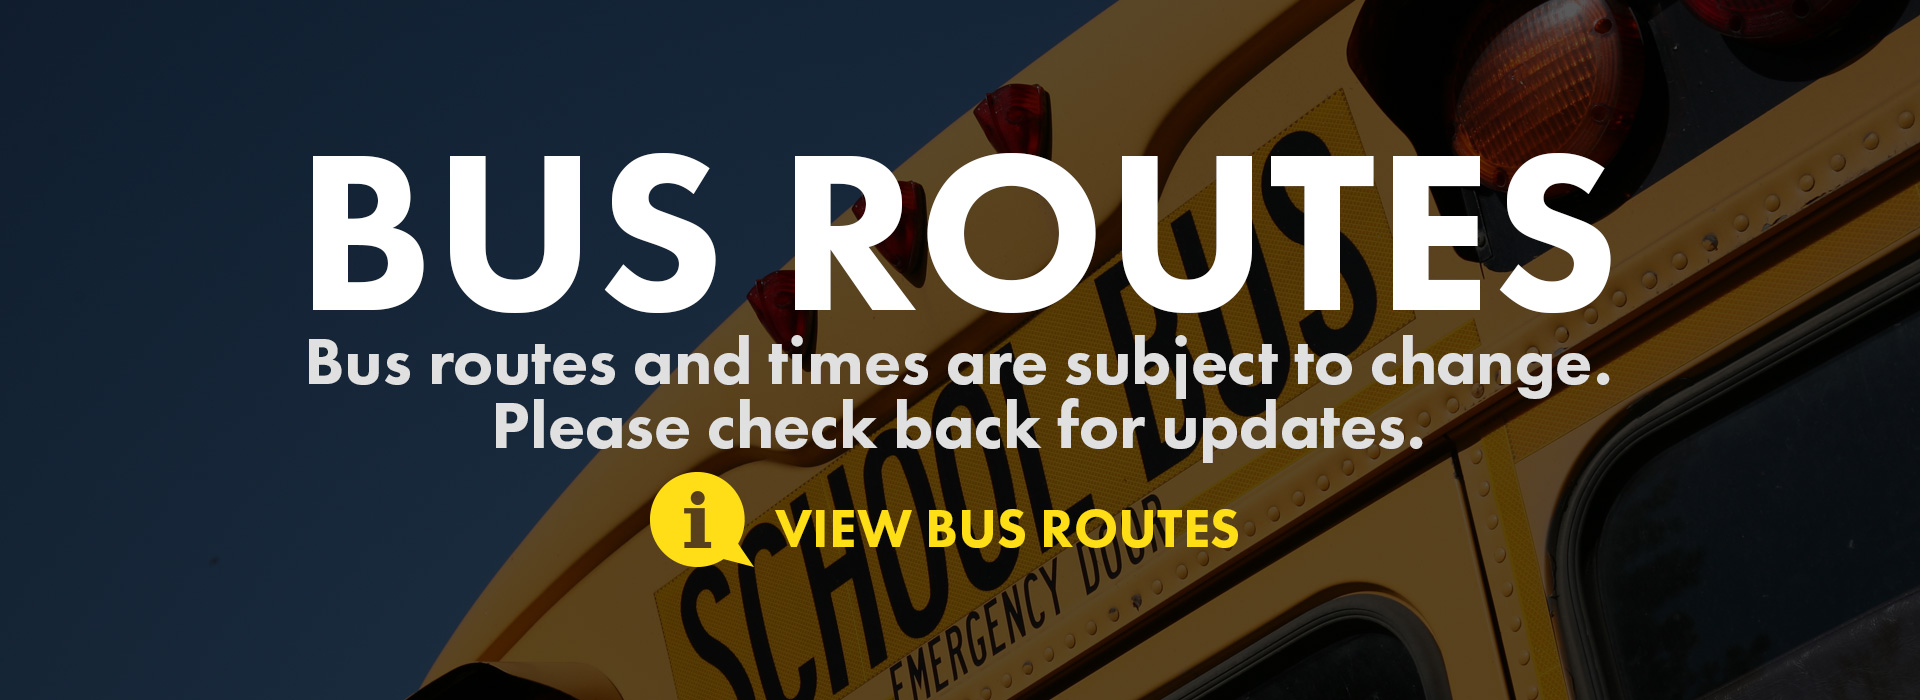 bus routes and times update with yellow school bus top rear